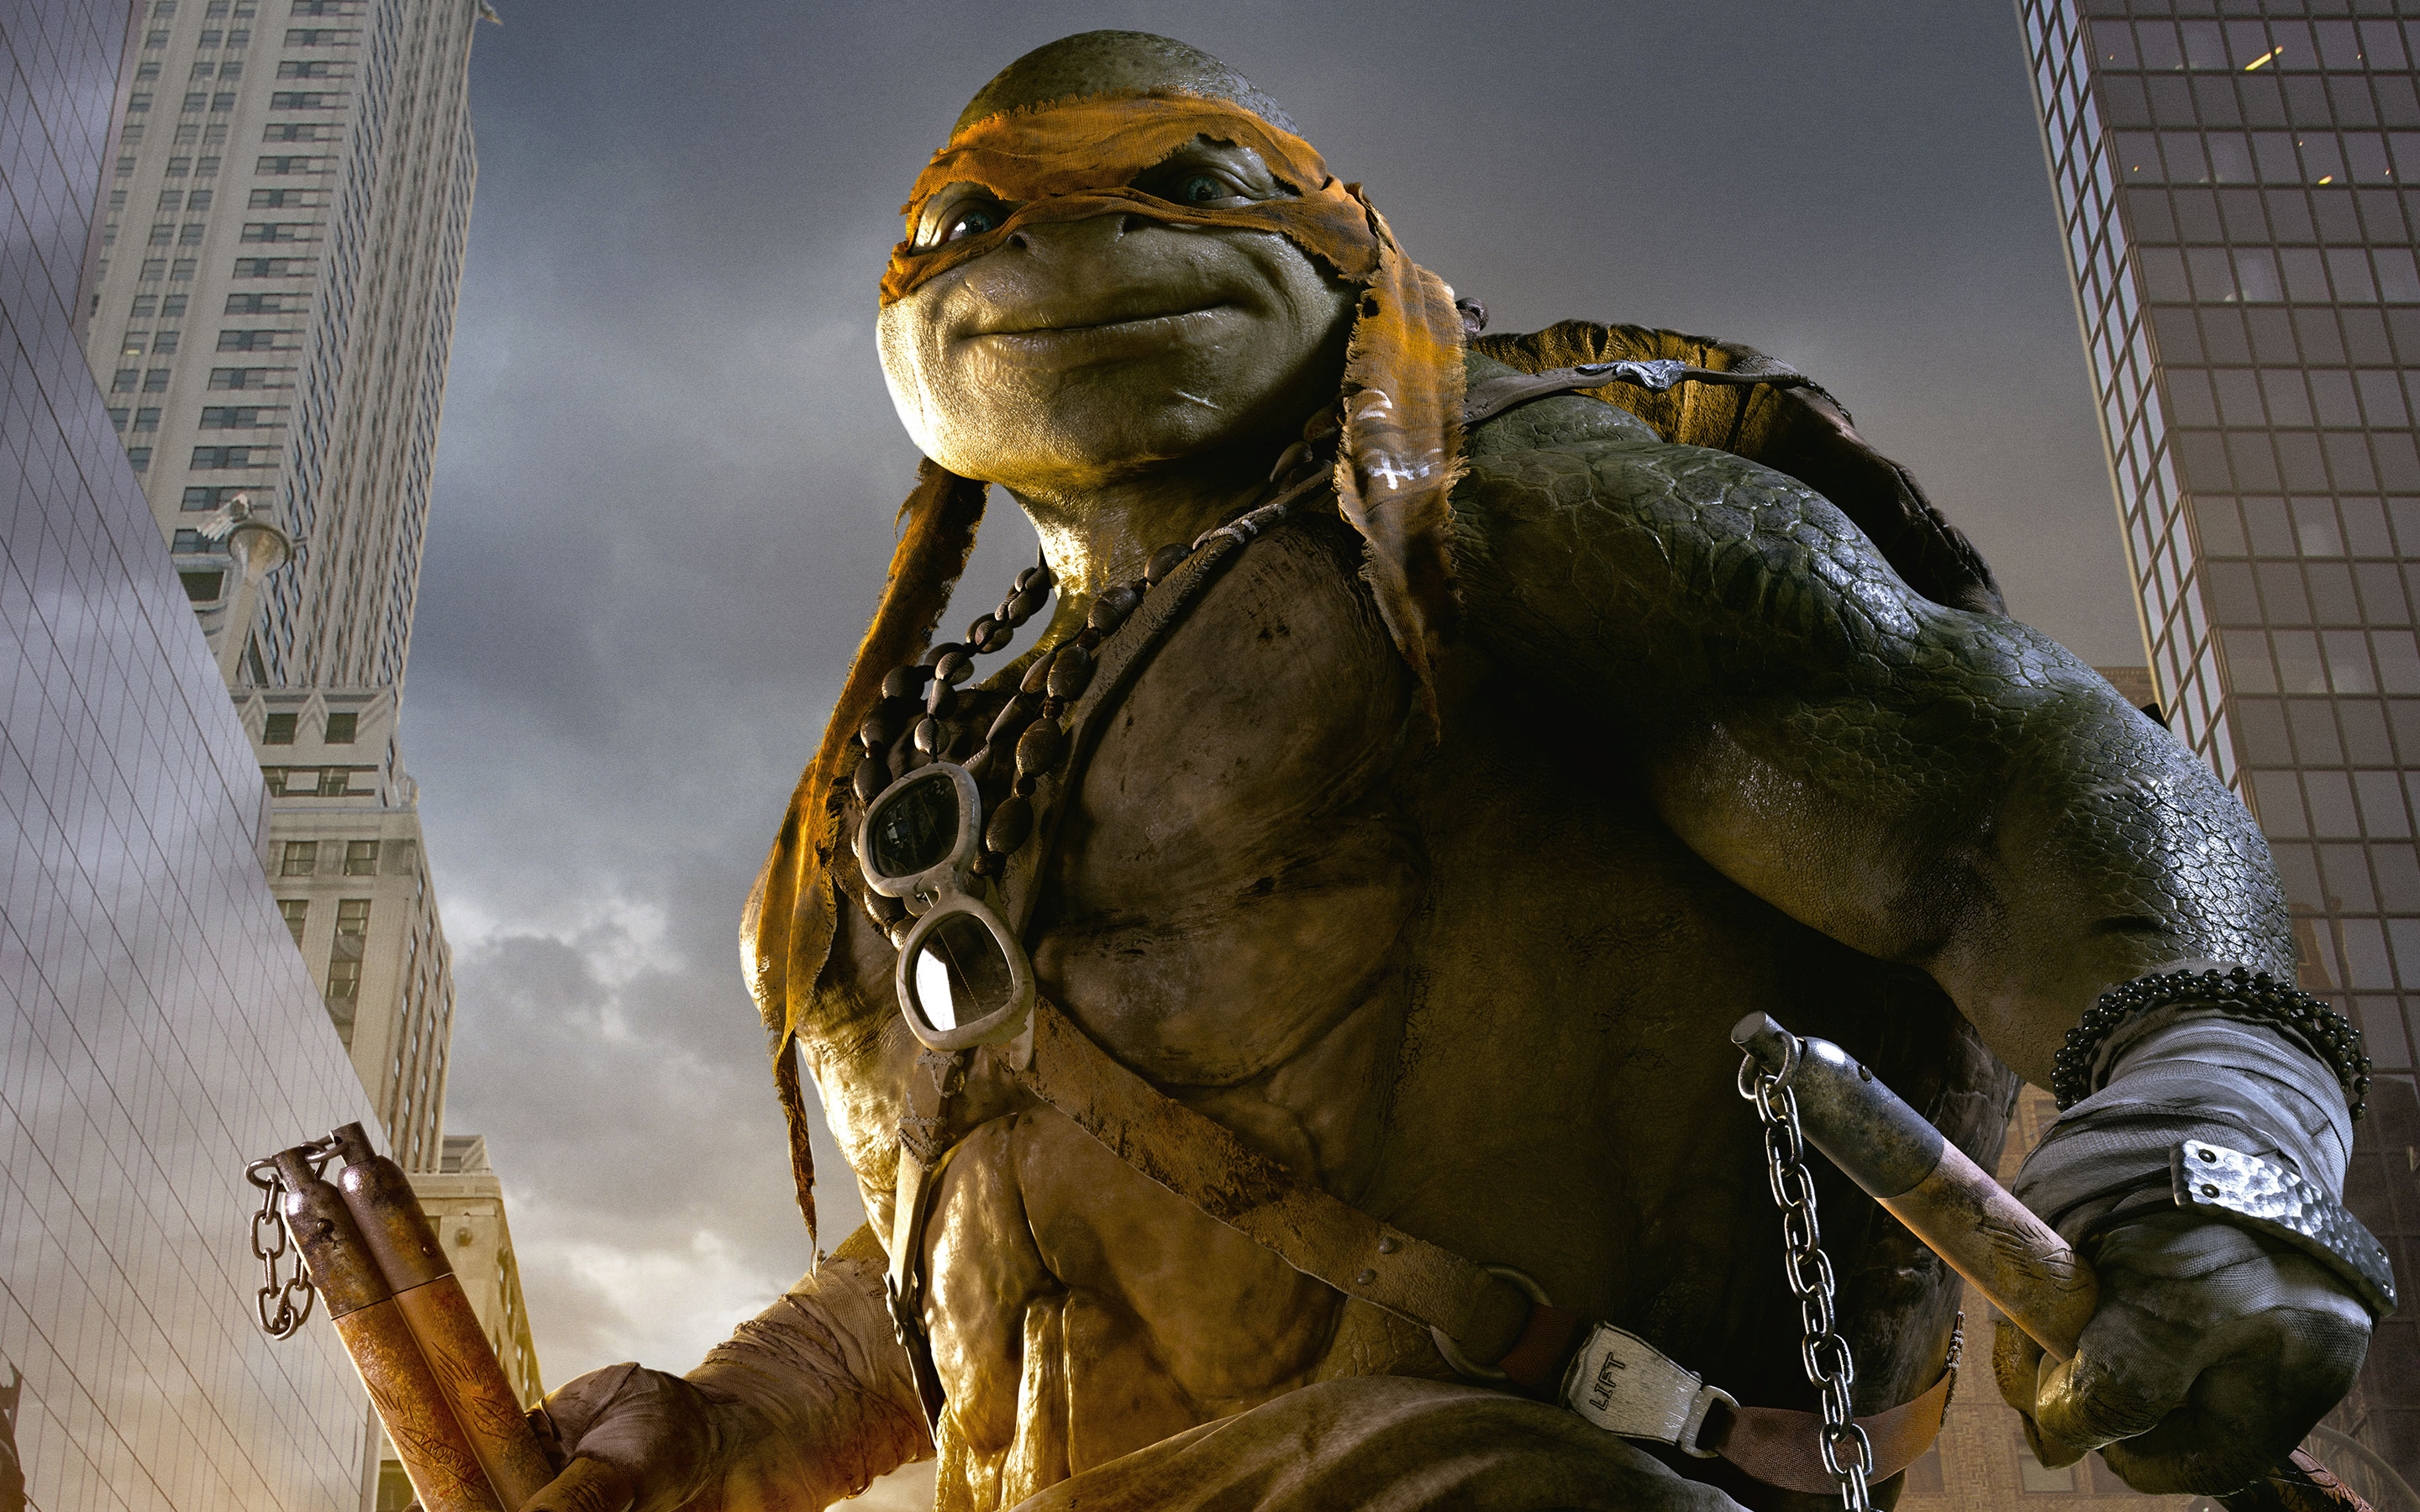 Mikey in Teenage Mutant Ninja Turtles 2471.49 Kb